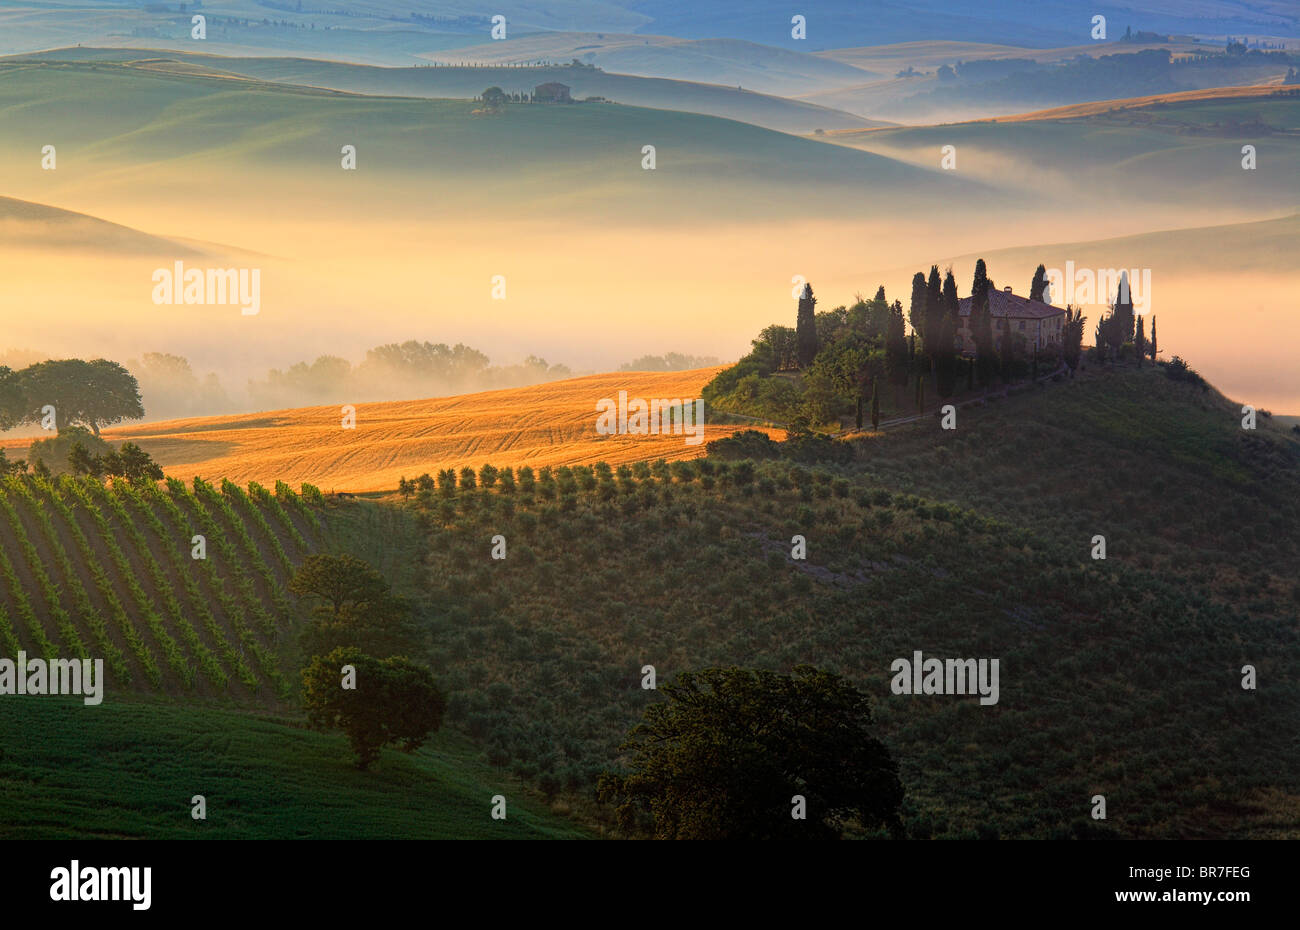 Villa on a hill in Val d'Orcia, a region of Tuscany in central Italy, at sunrise - Stock Image